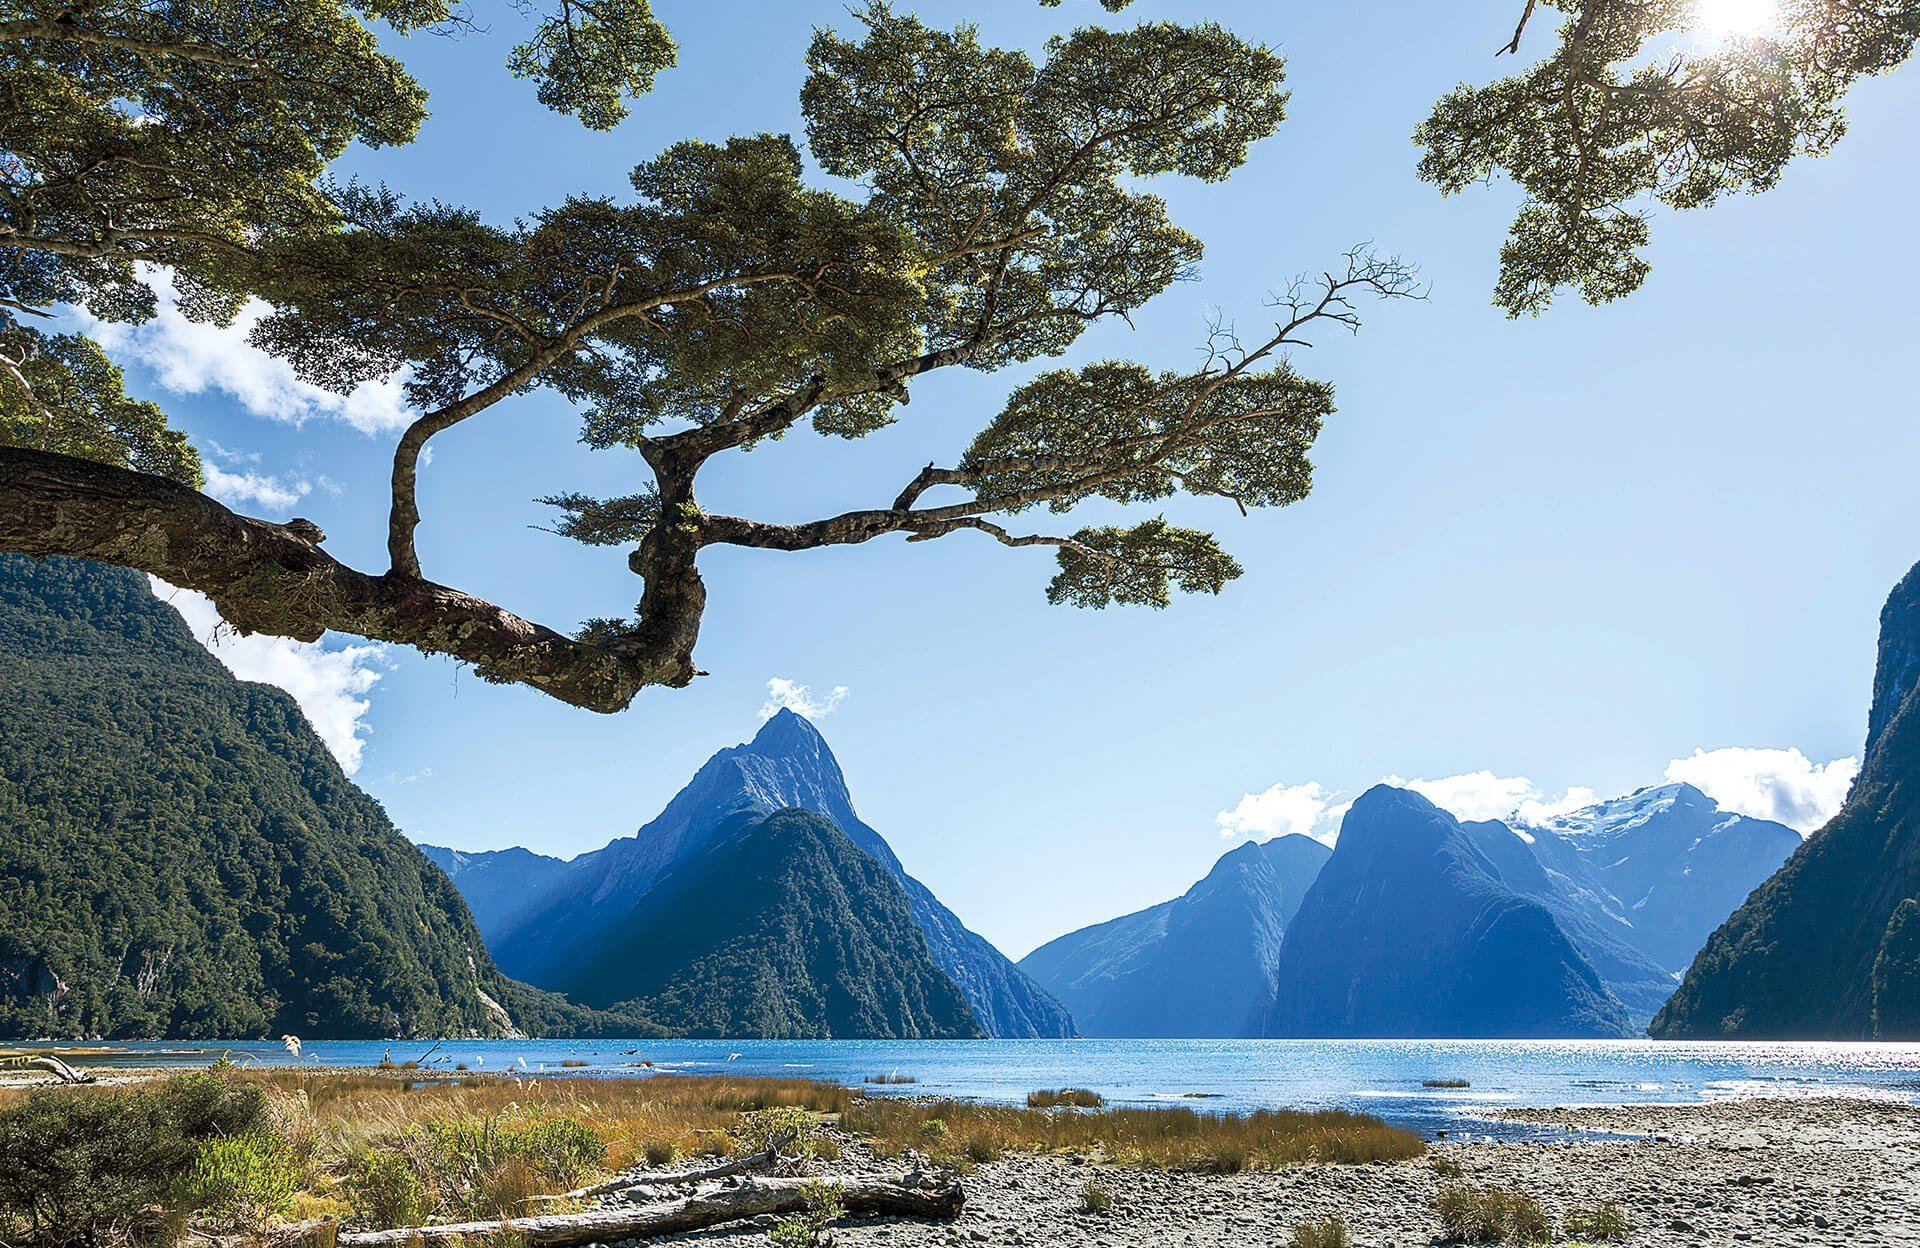 New Zealand's Crown Jewels: Milford and Doubtful Sound